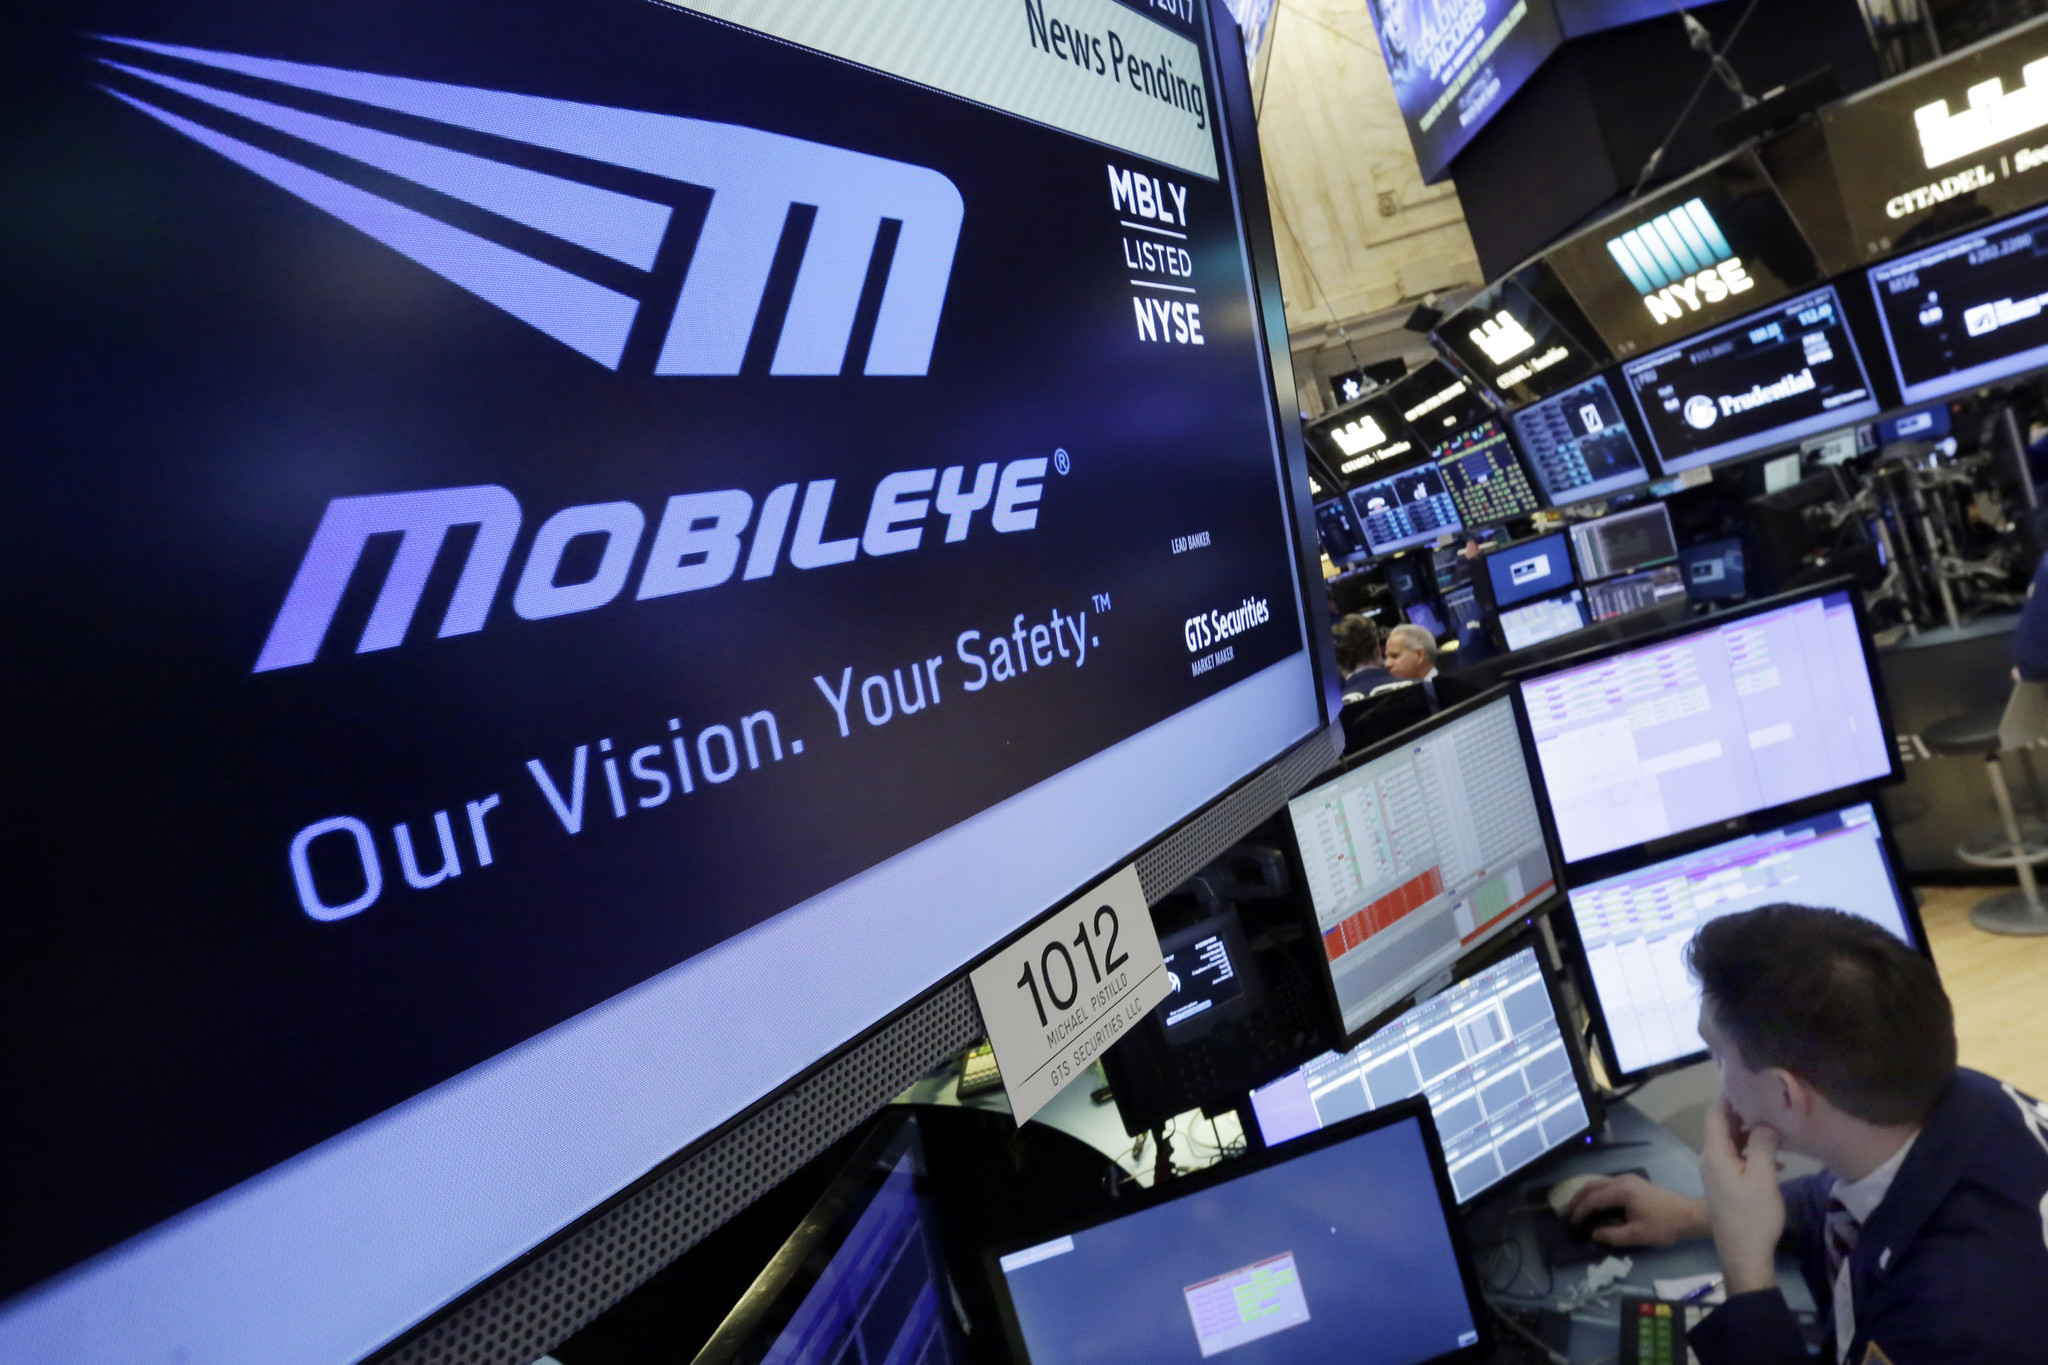 Intel, betting big on driverless cars, is buying Mobileye for $15 billion